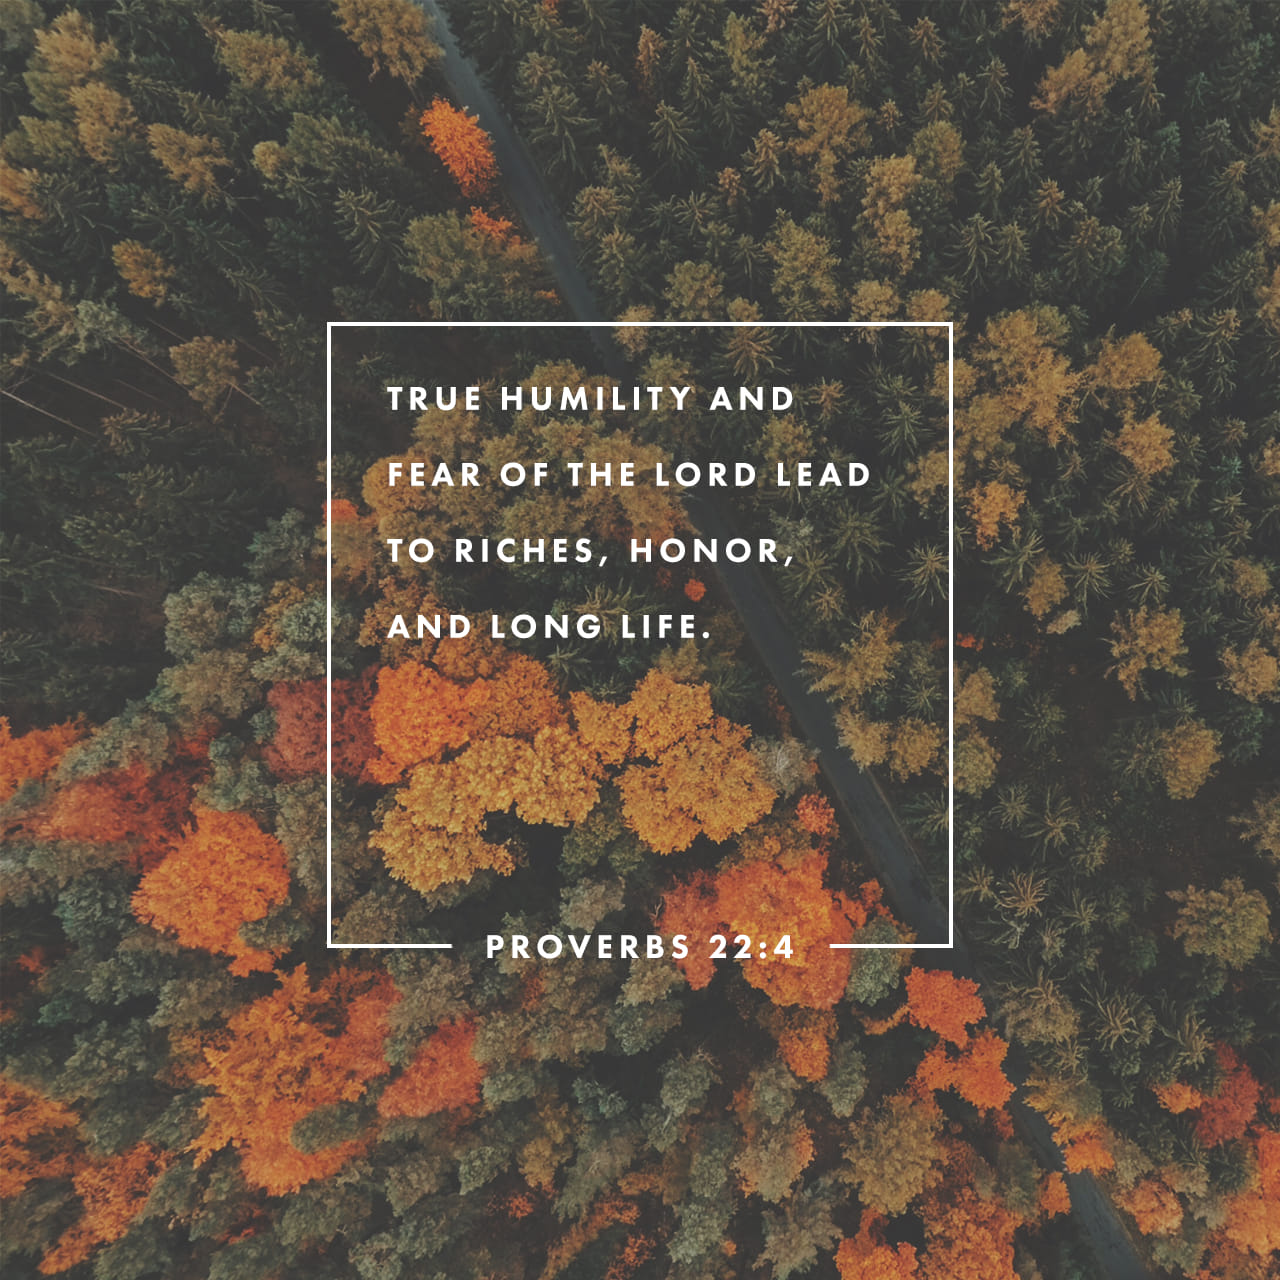 Proverbs 22:4 By humility and the fear of the LORD are riches, and honour, and life. | King James Version (KJV)